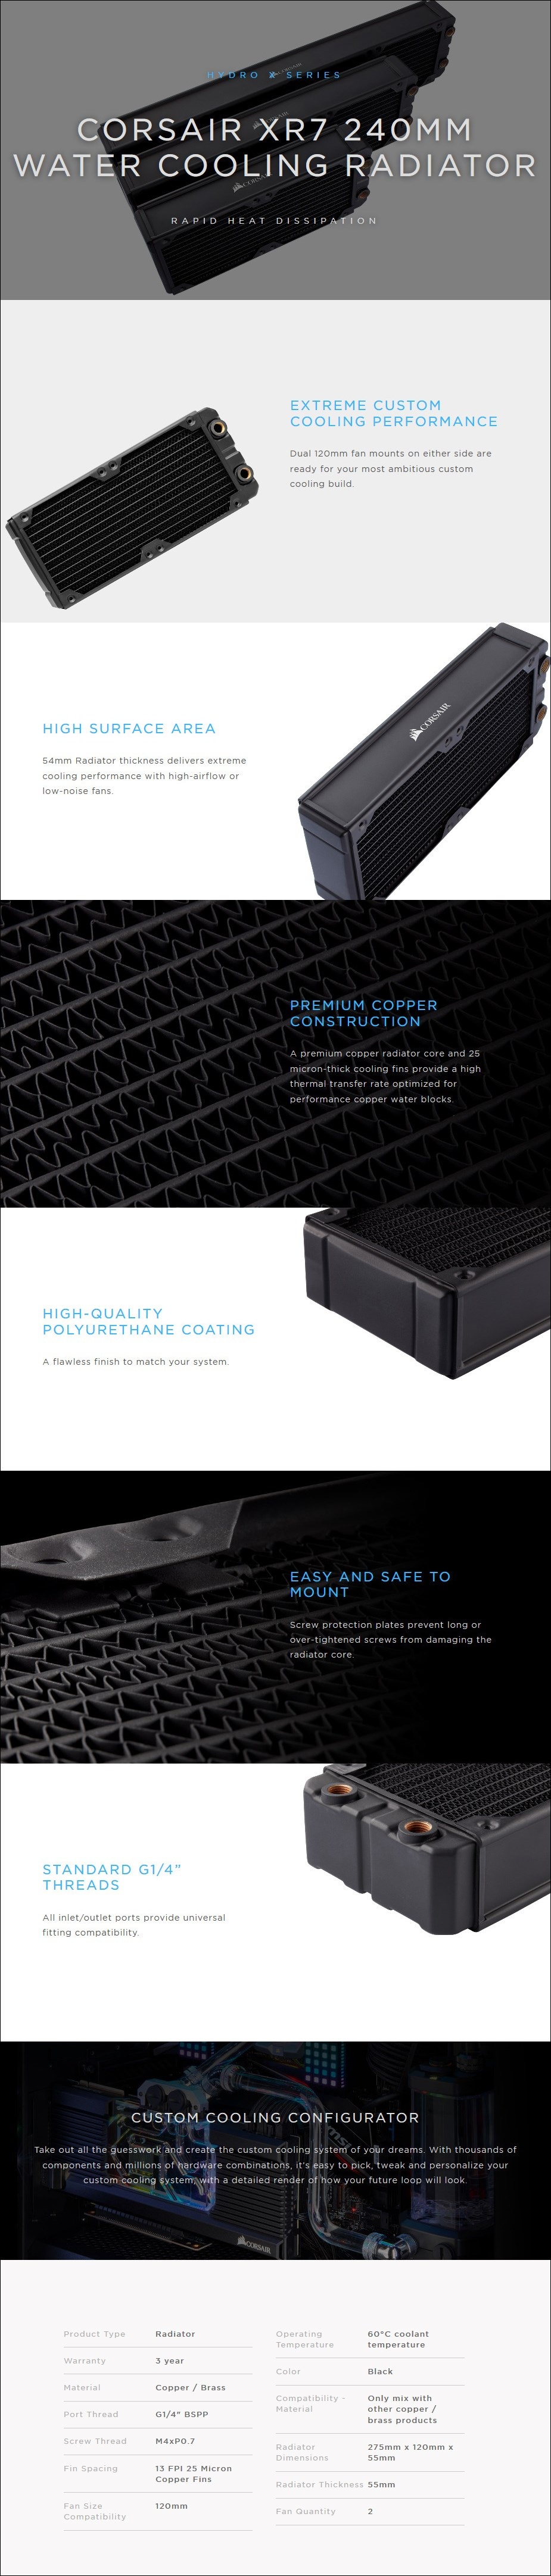 Corsair Hydro X Series XR7 240mm Water Cooling Radiator - Overview 1